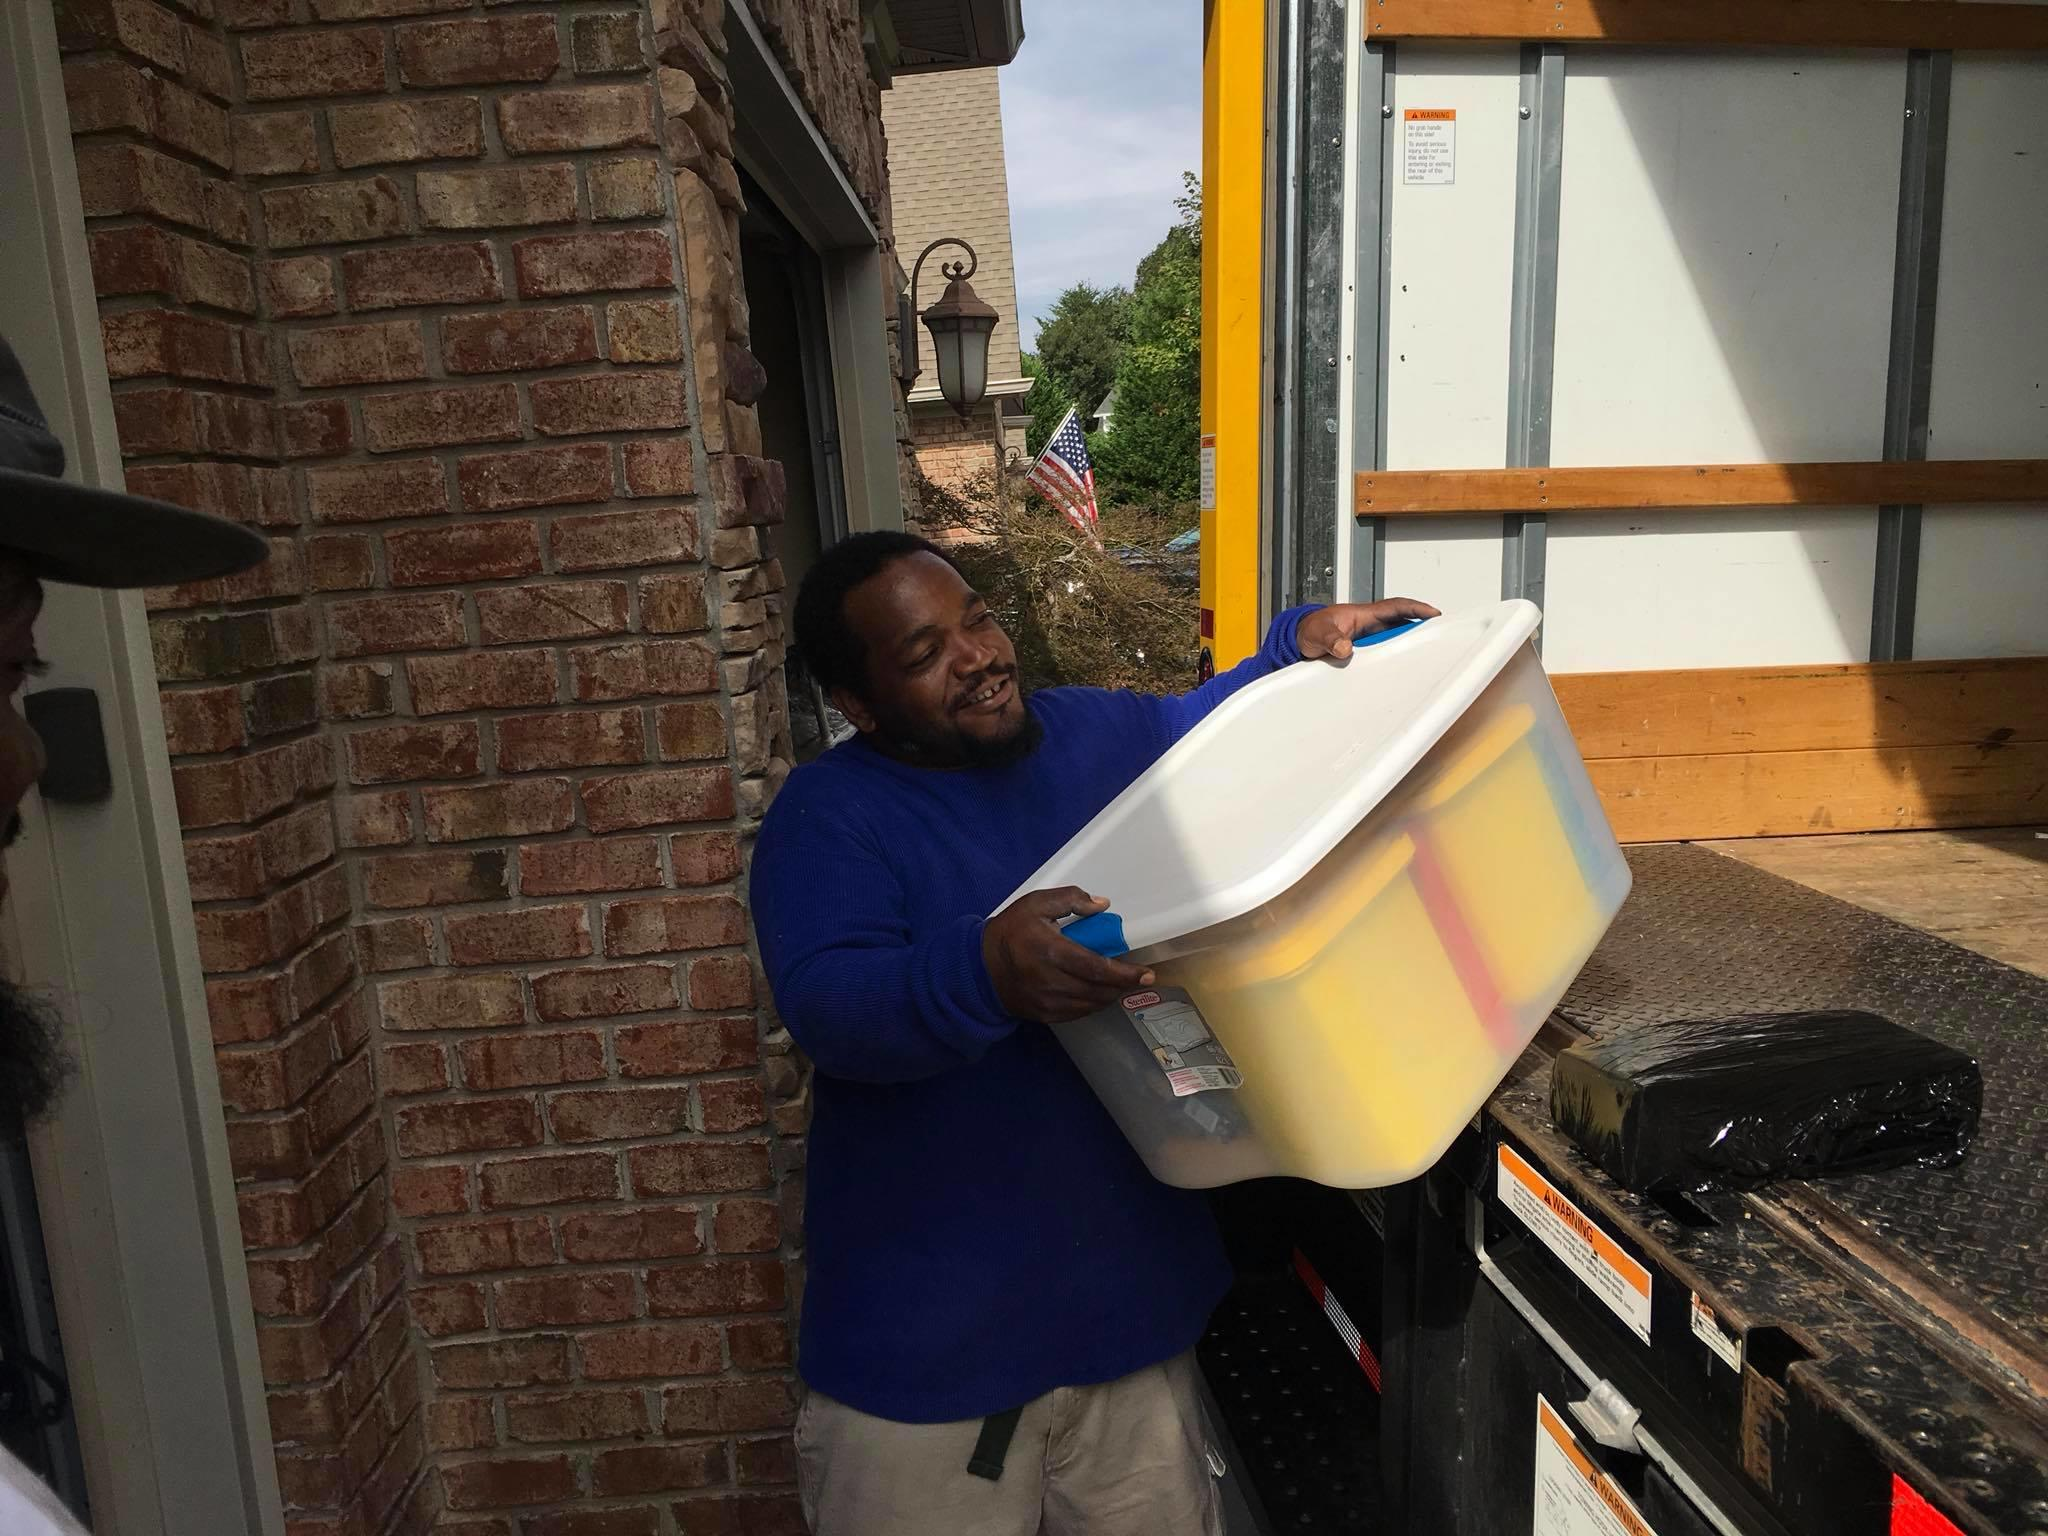 Pannell's 1st Team Moving & Delivery LLC image 7